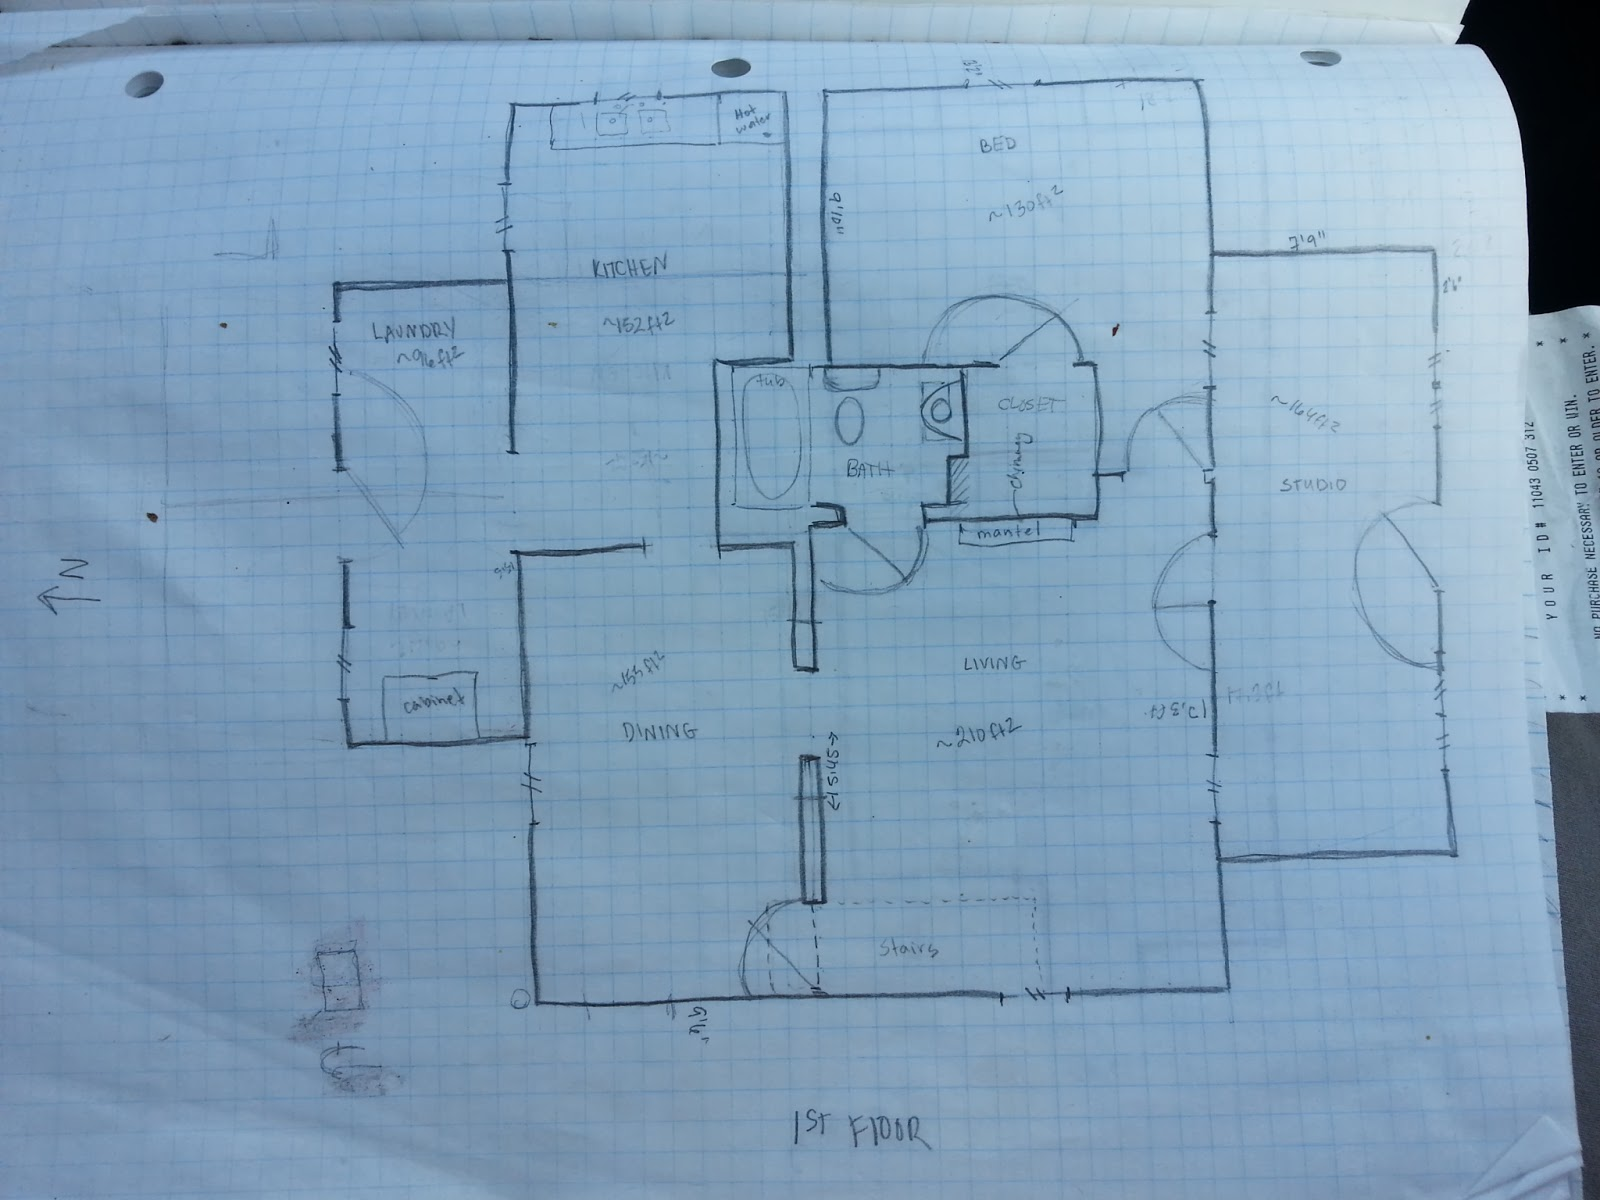 International Blue: Our House Design Sketches on Graph Paper